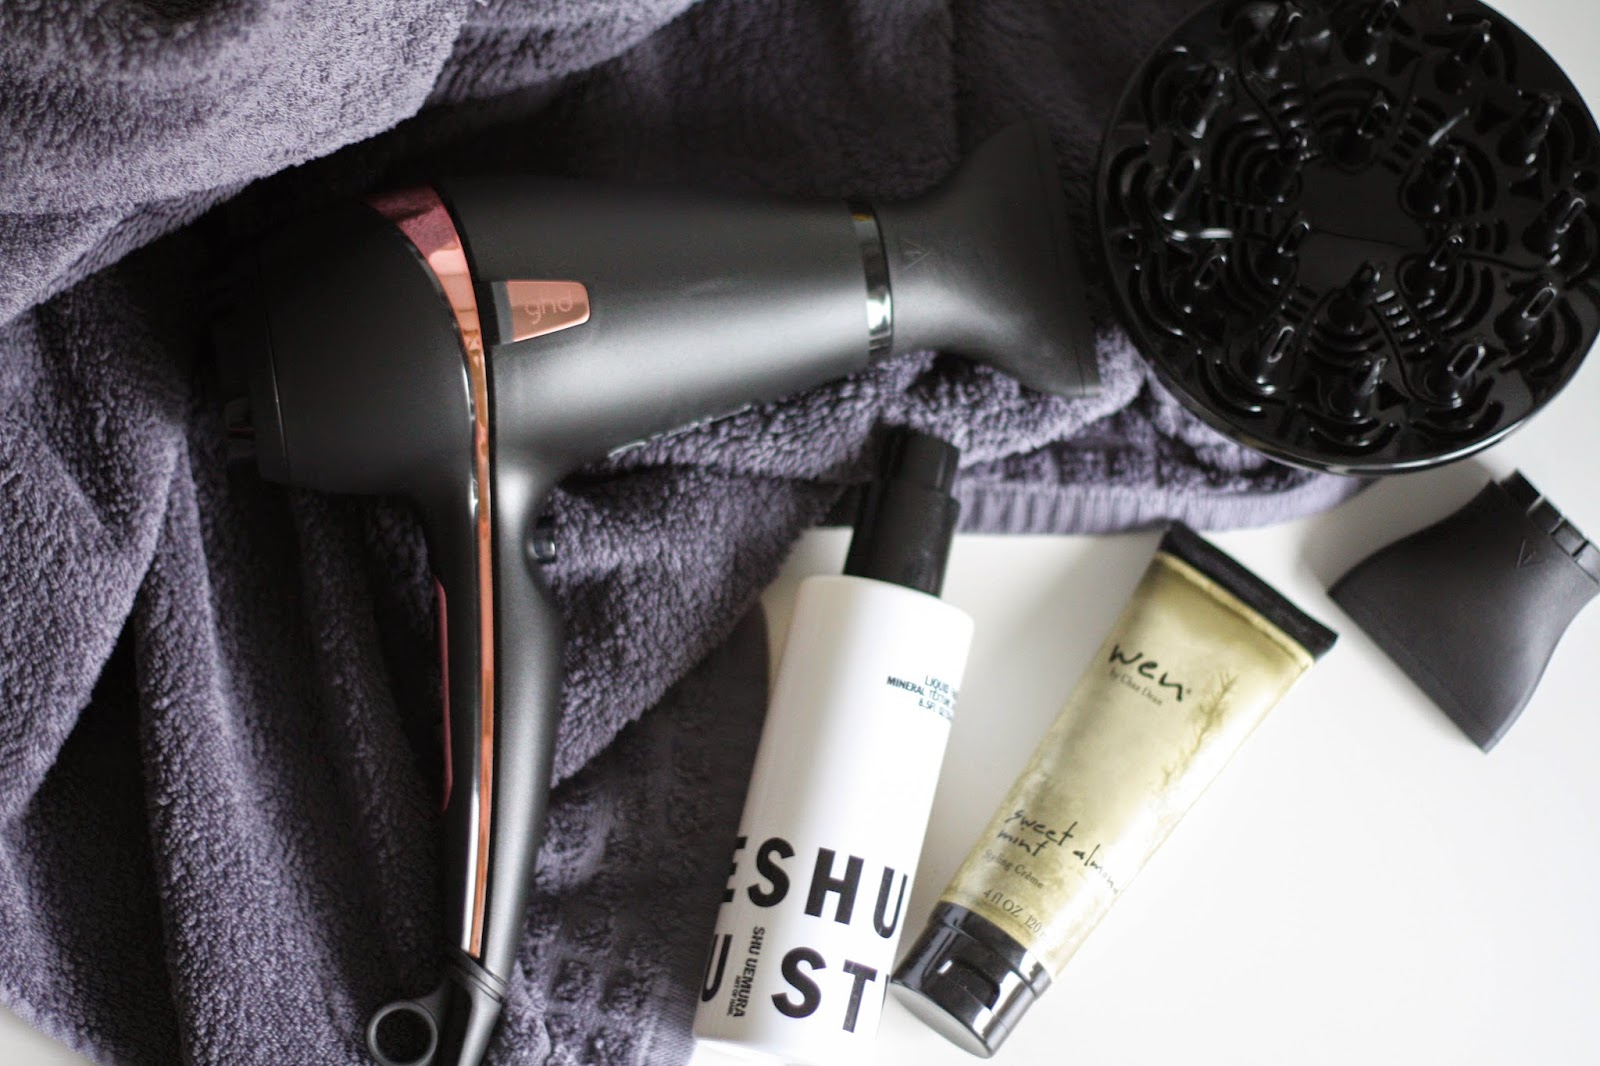 GHD rose gold hair dryer